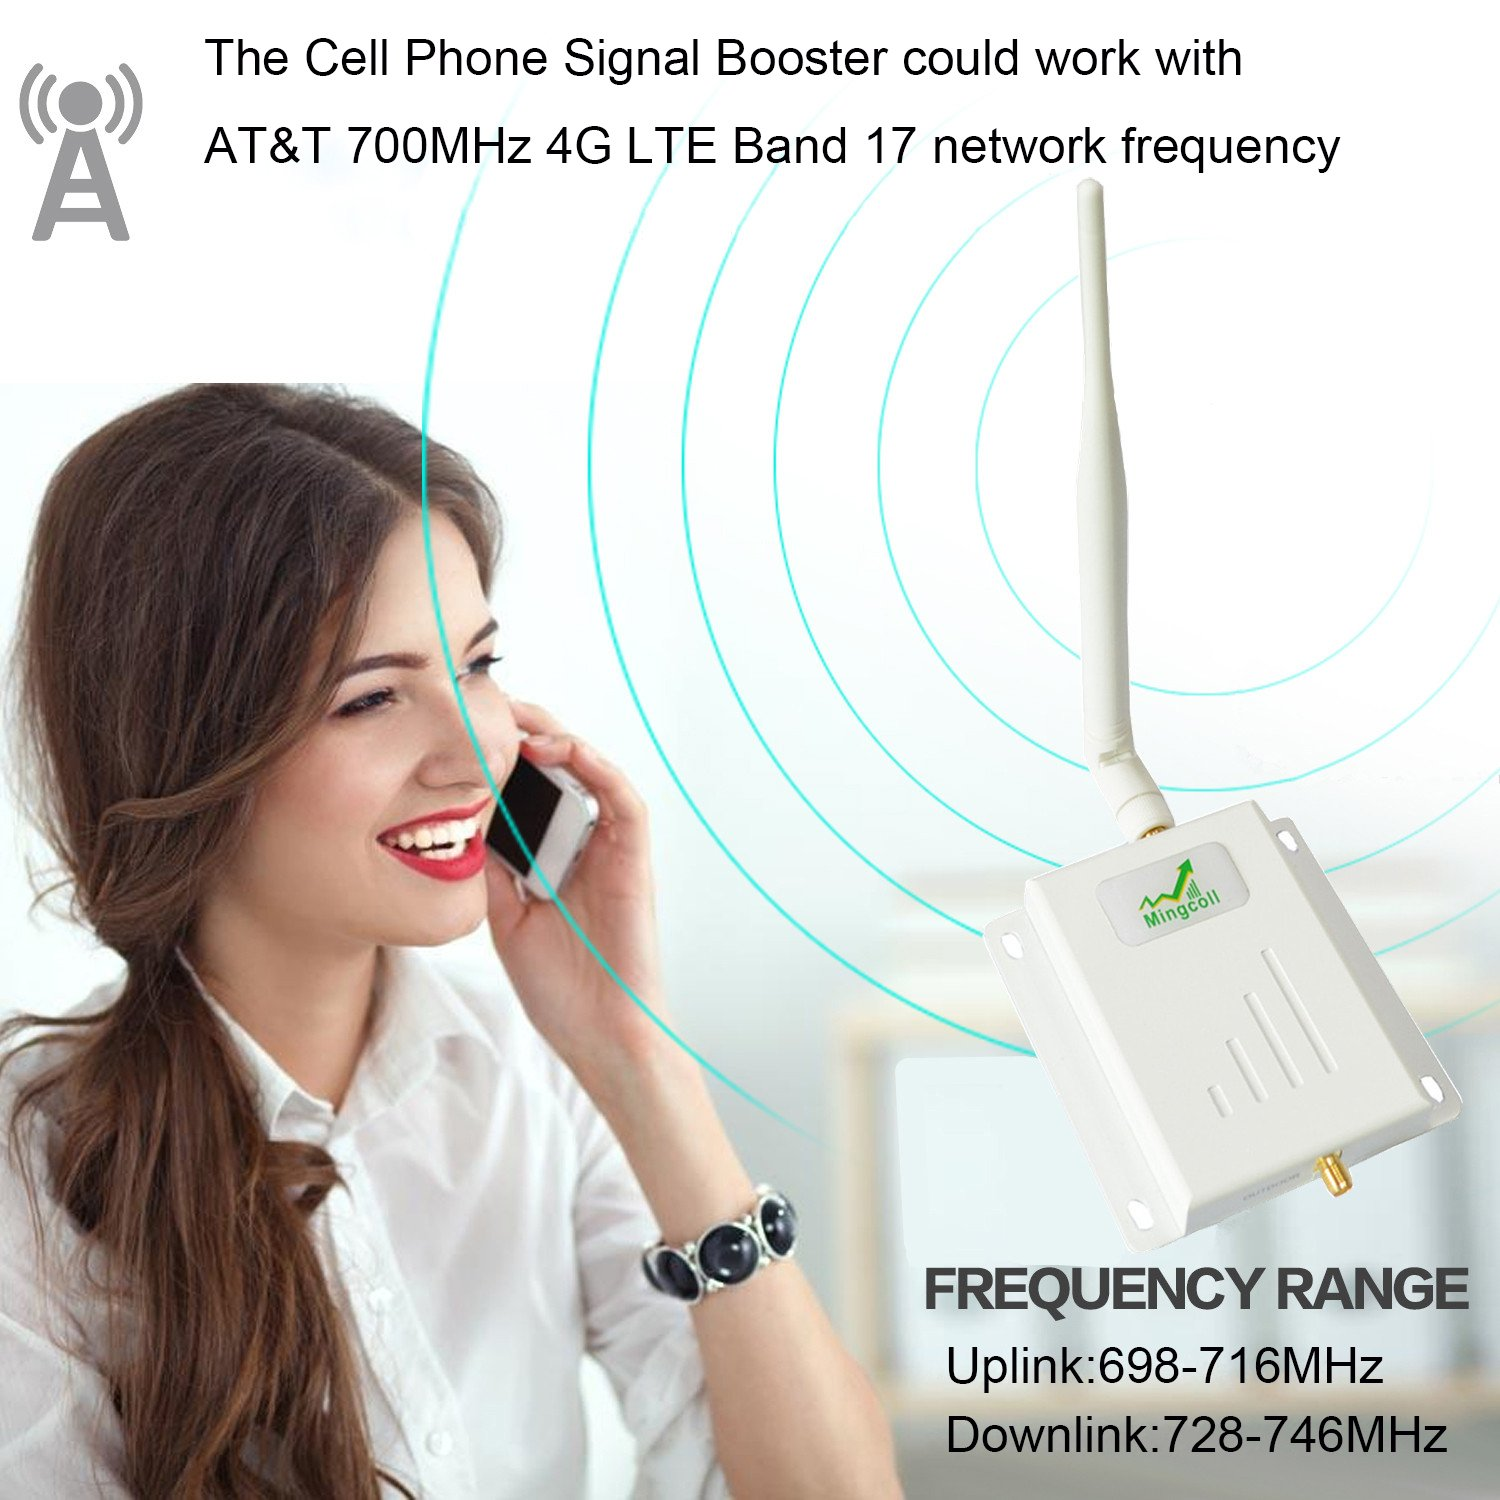 Amazon.com: Cell Phone Signal Booster at&T T-Mobile 700MHz Band 12/17 Cell Signal Amplifier Mingcoll High Gain 4G LTE Mobile Cellphone Signal Repeater ...